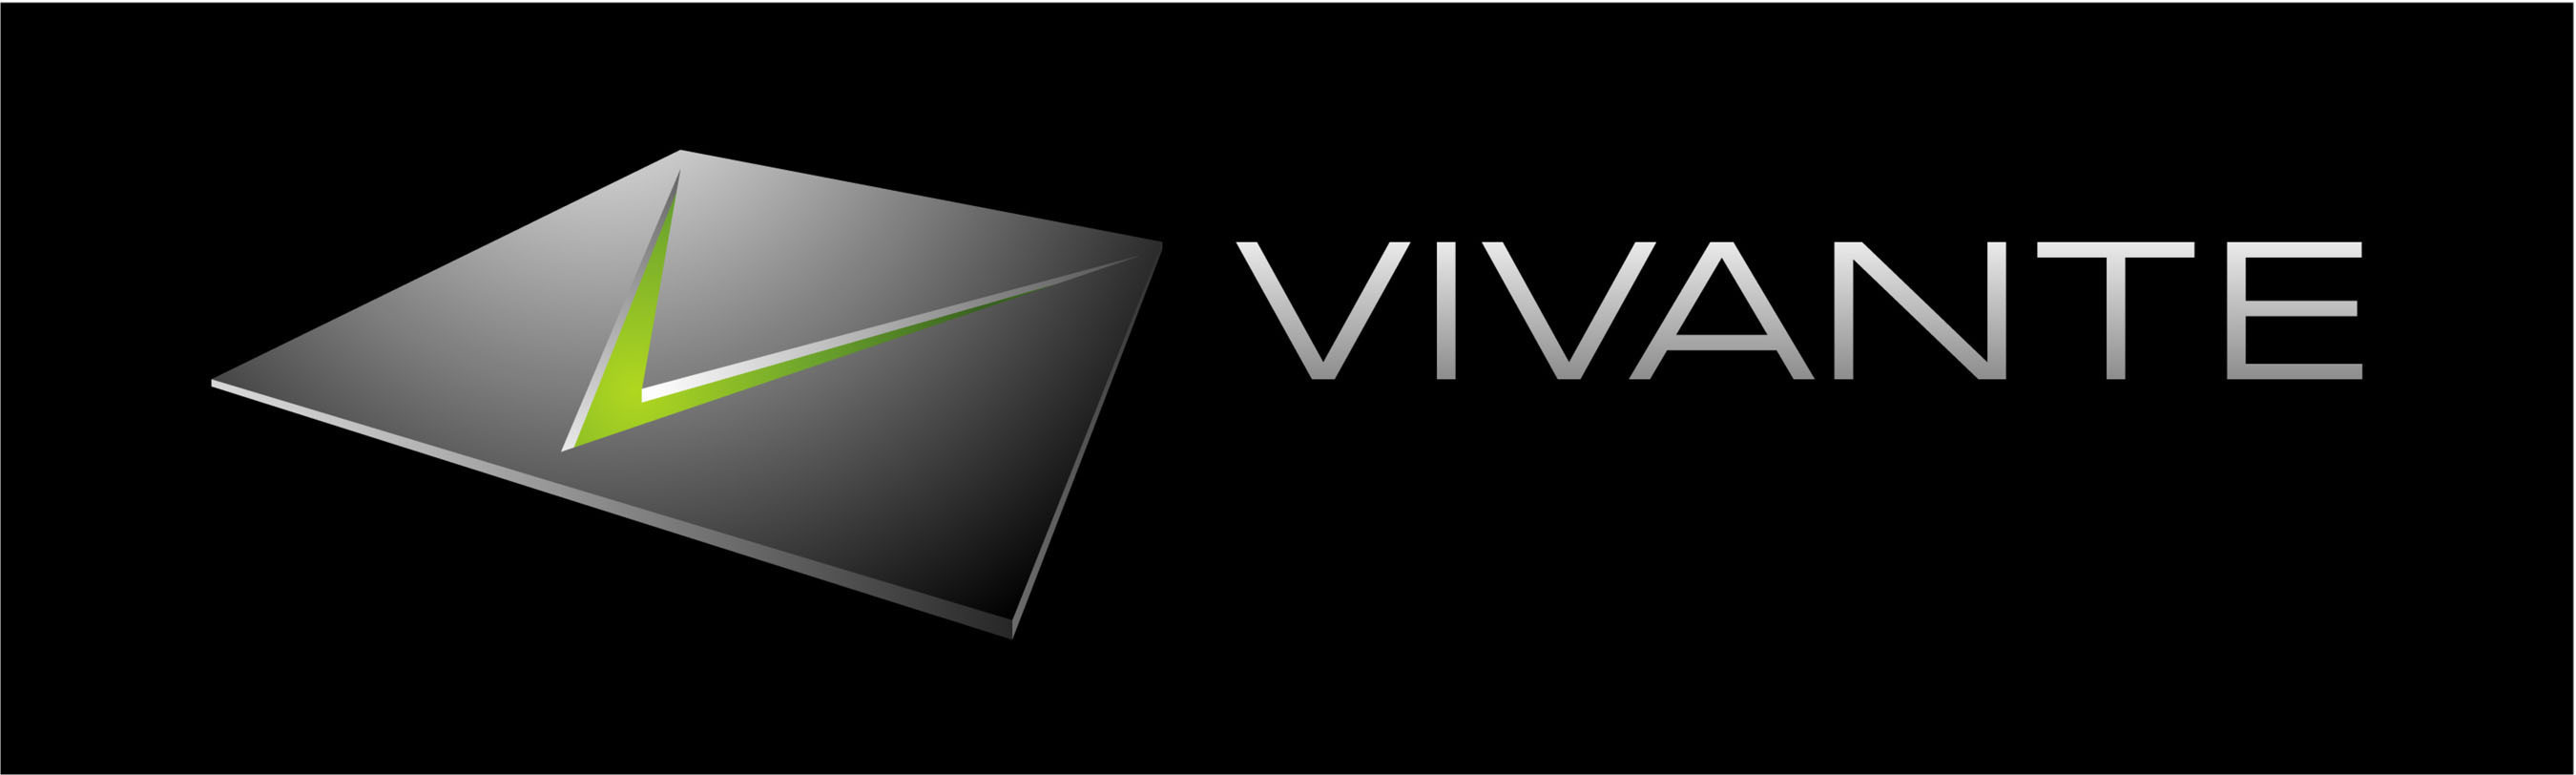 Vivante Announces Support for Vulkan GPU Rendering and Compute Standards